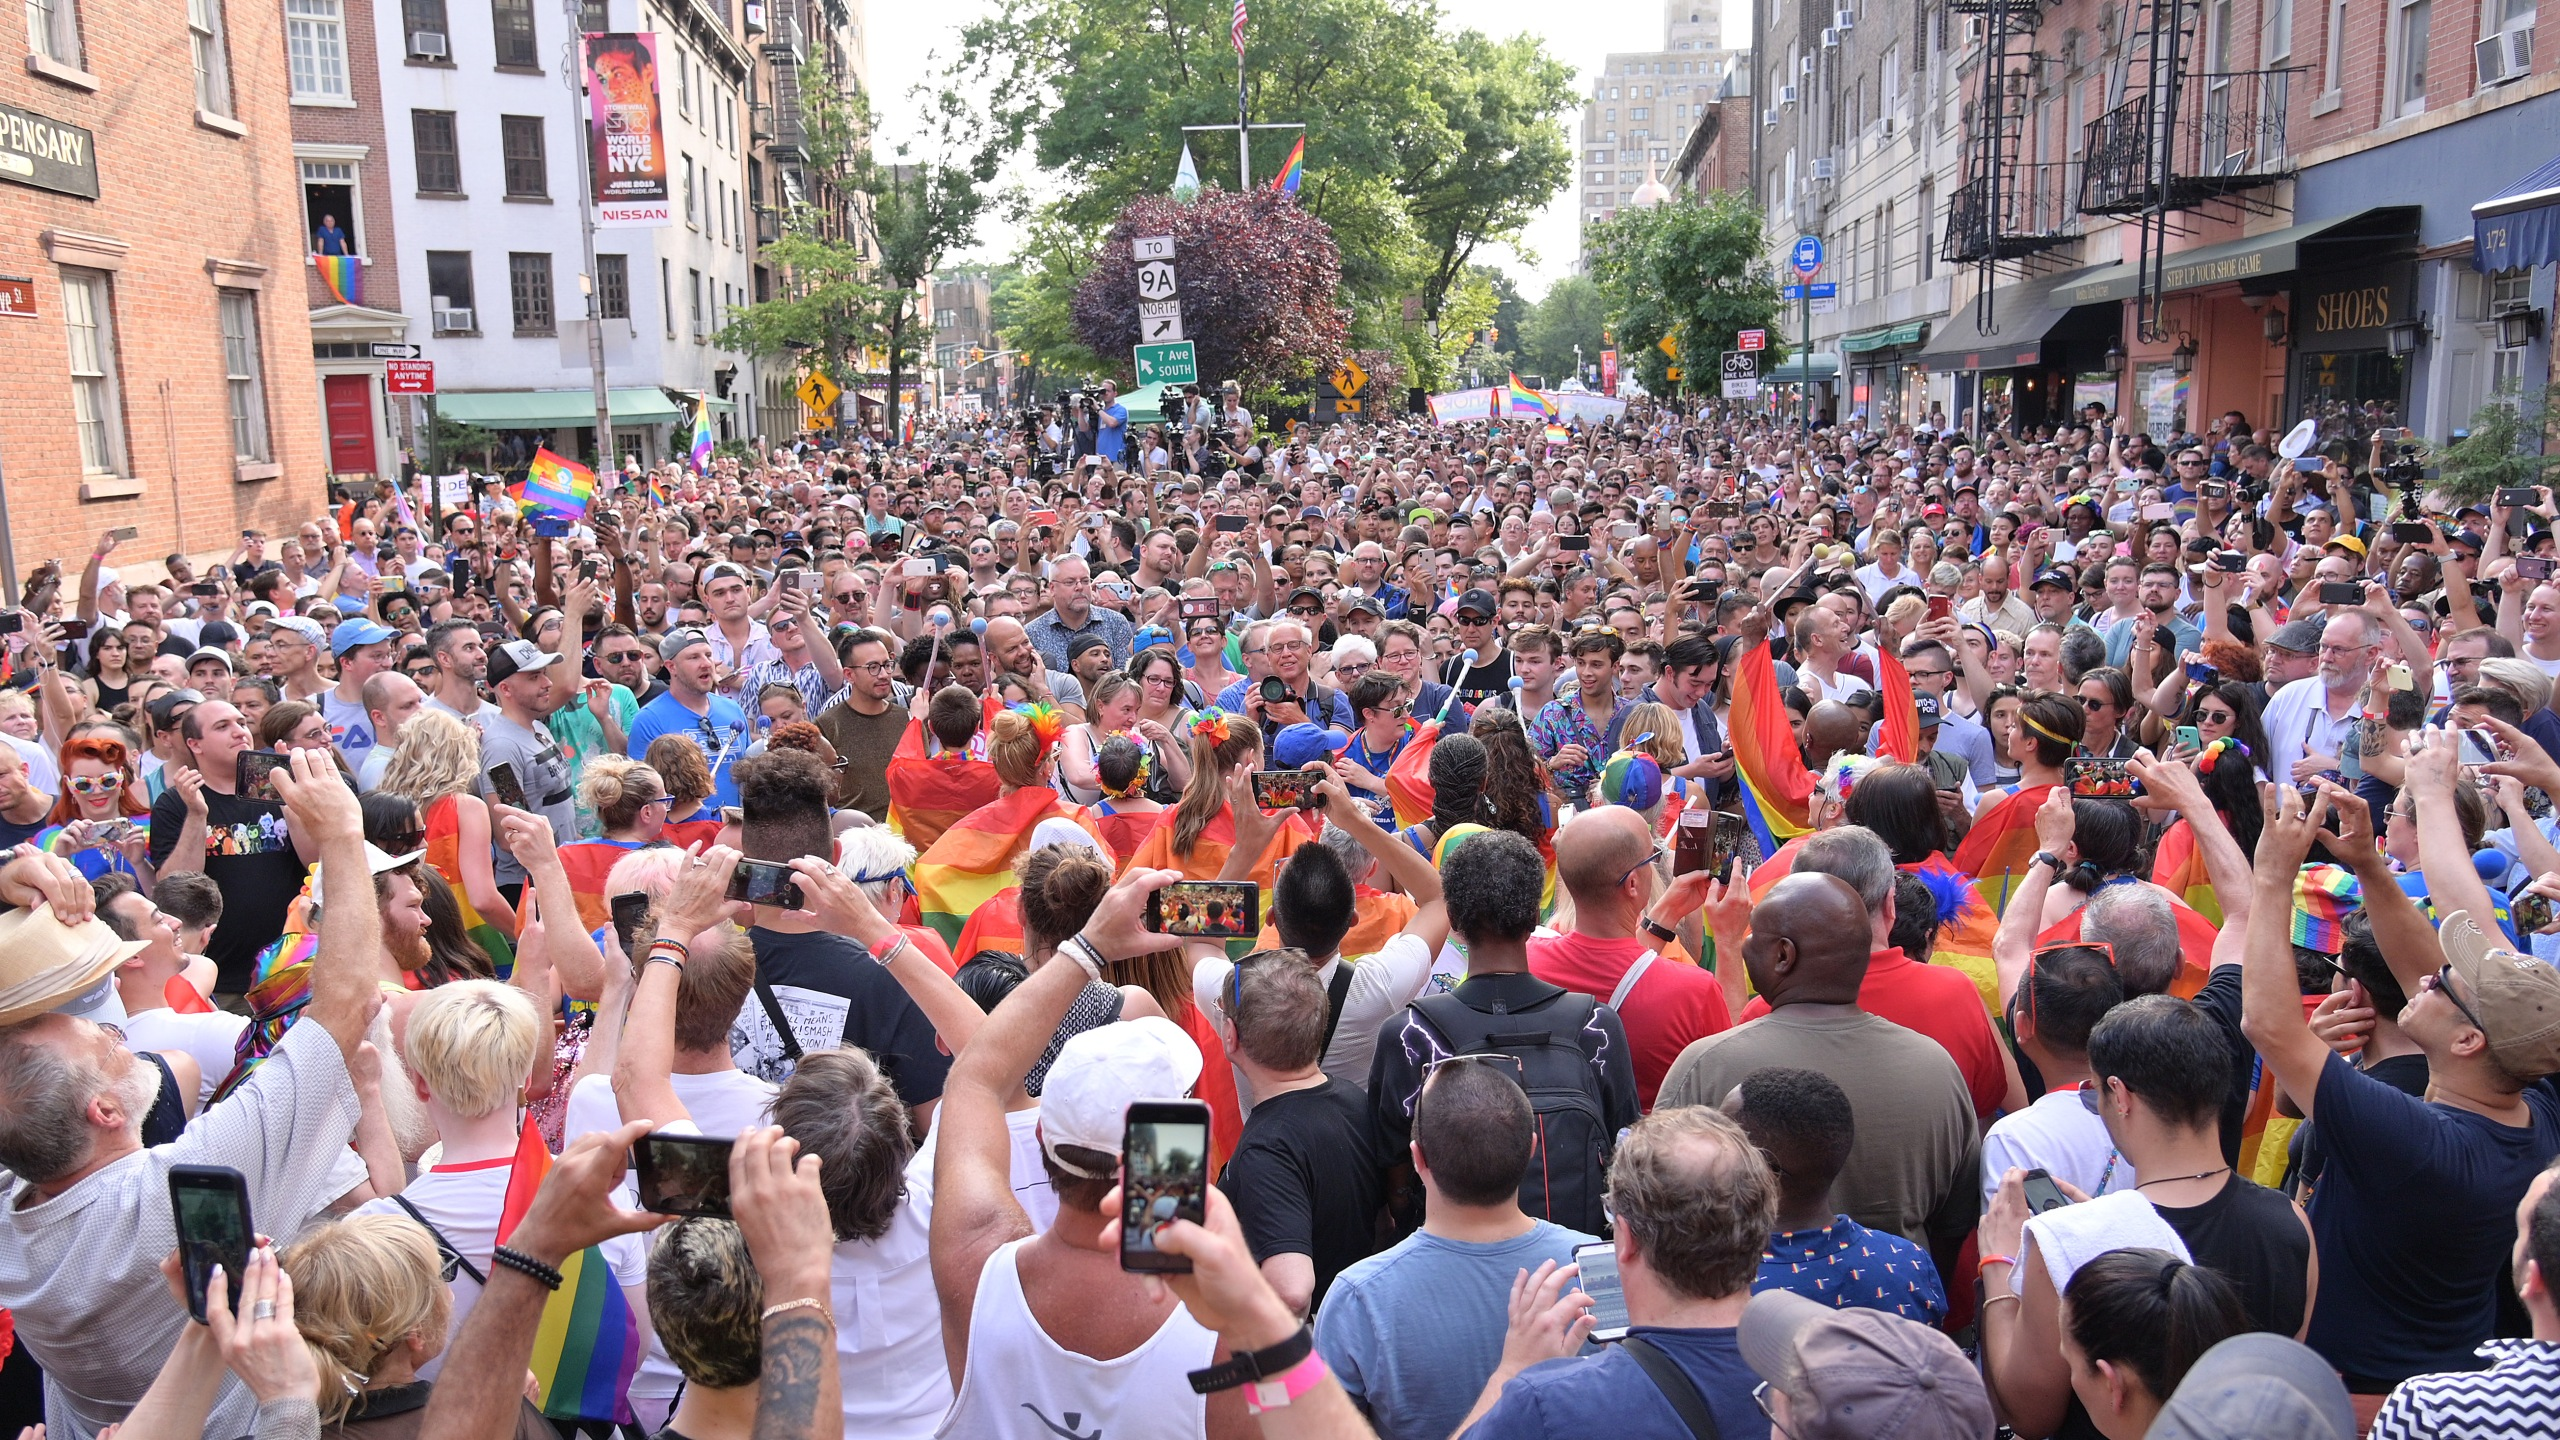 A general view of the crowd during the Stonewall 50th Commemoration rally during WorldPride NYC 2019 on June 28, 2019, in New York City. (Credit: Michael Loccisano/Getty Images)